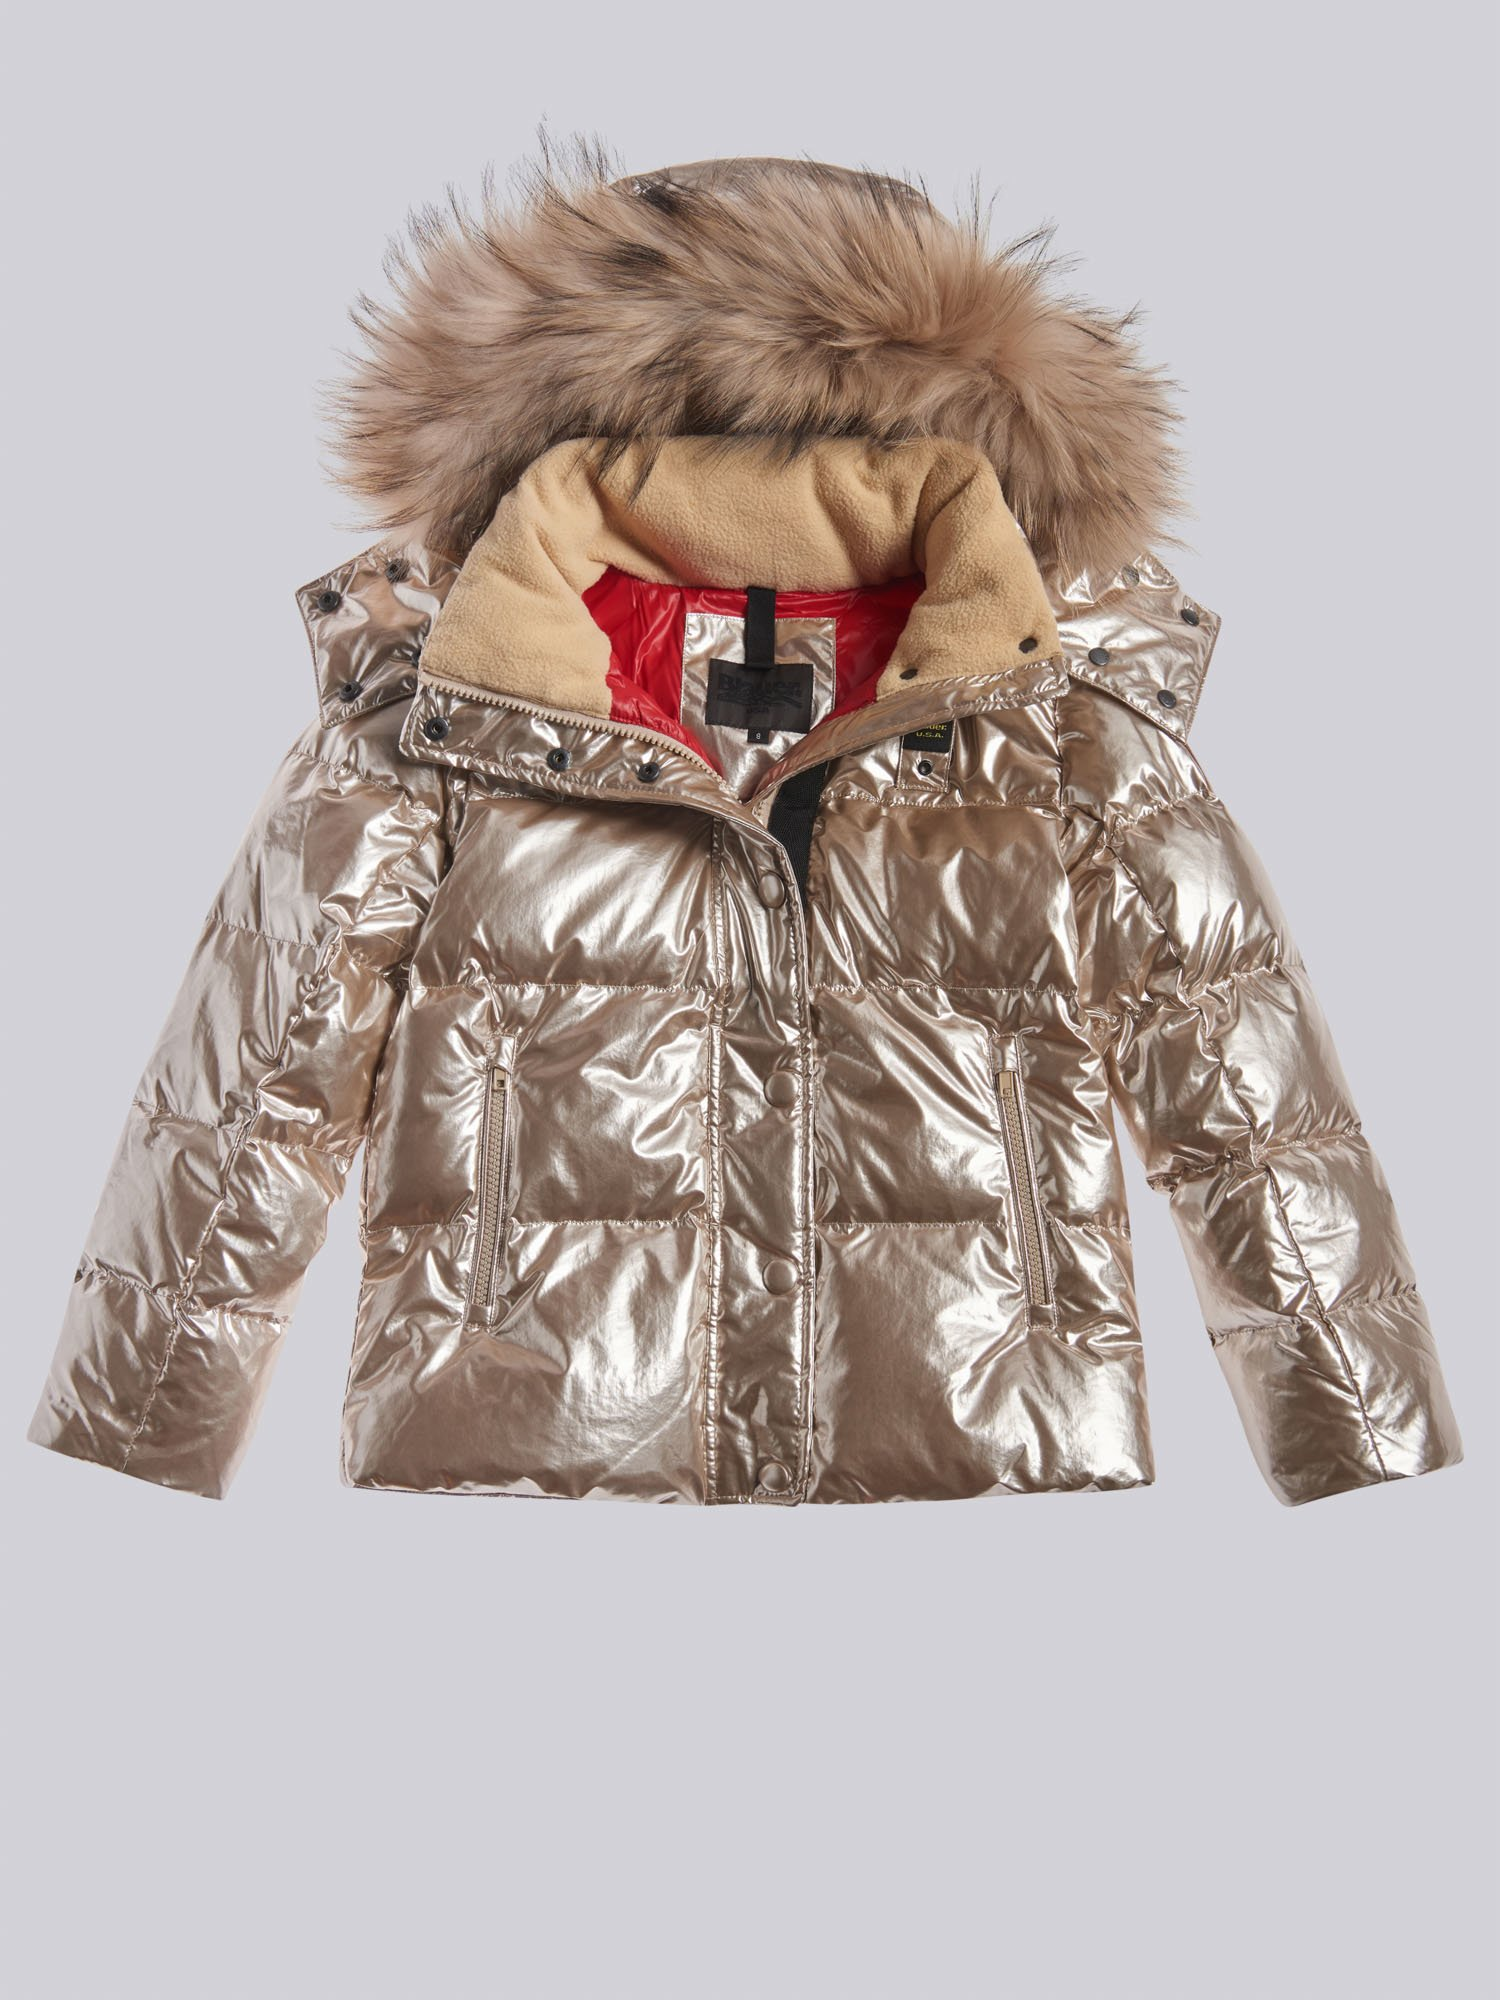 Blauer - TAMMY PEARL EFFECT DOWN JACKET - Burnished gold - Blauer